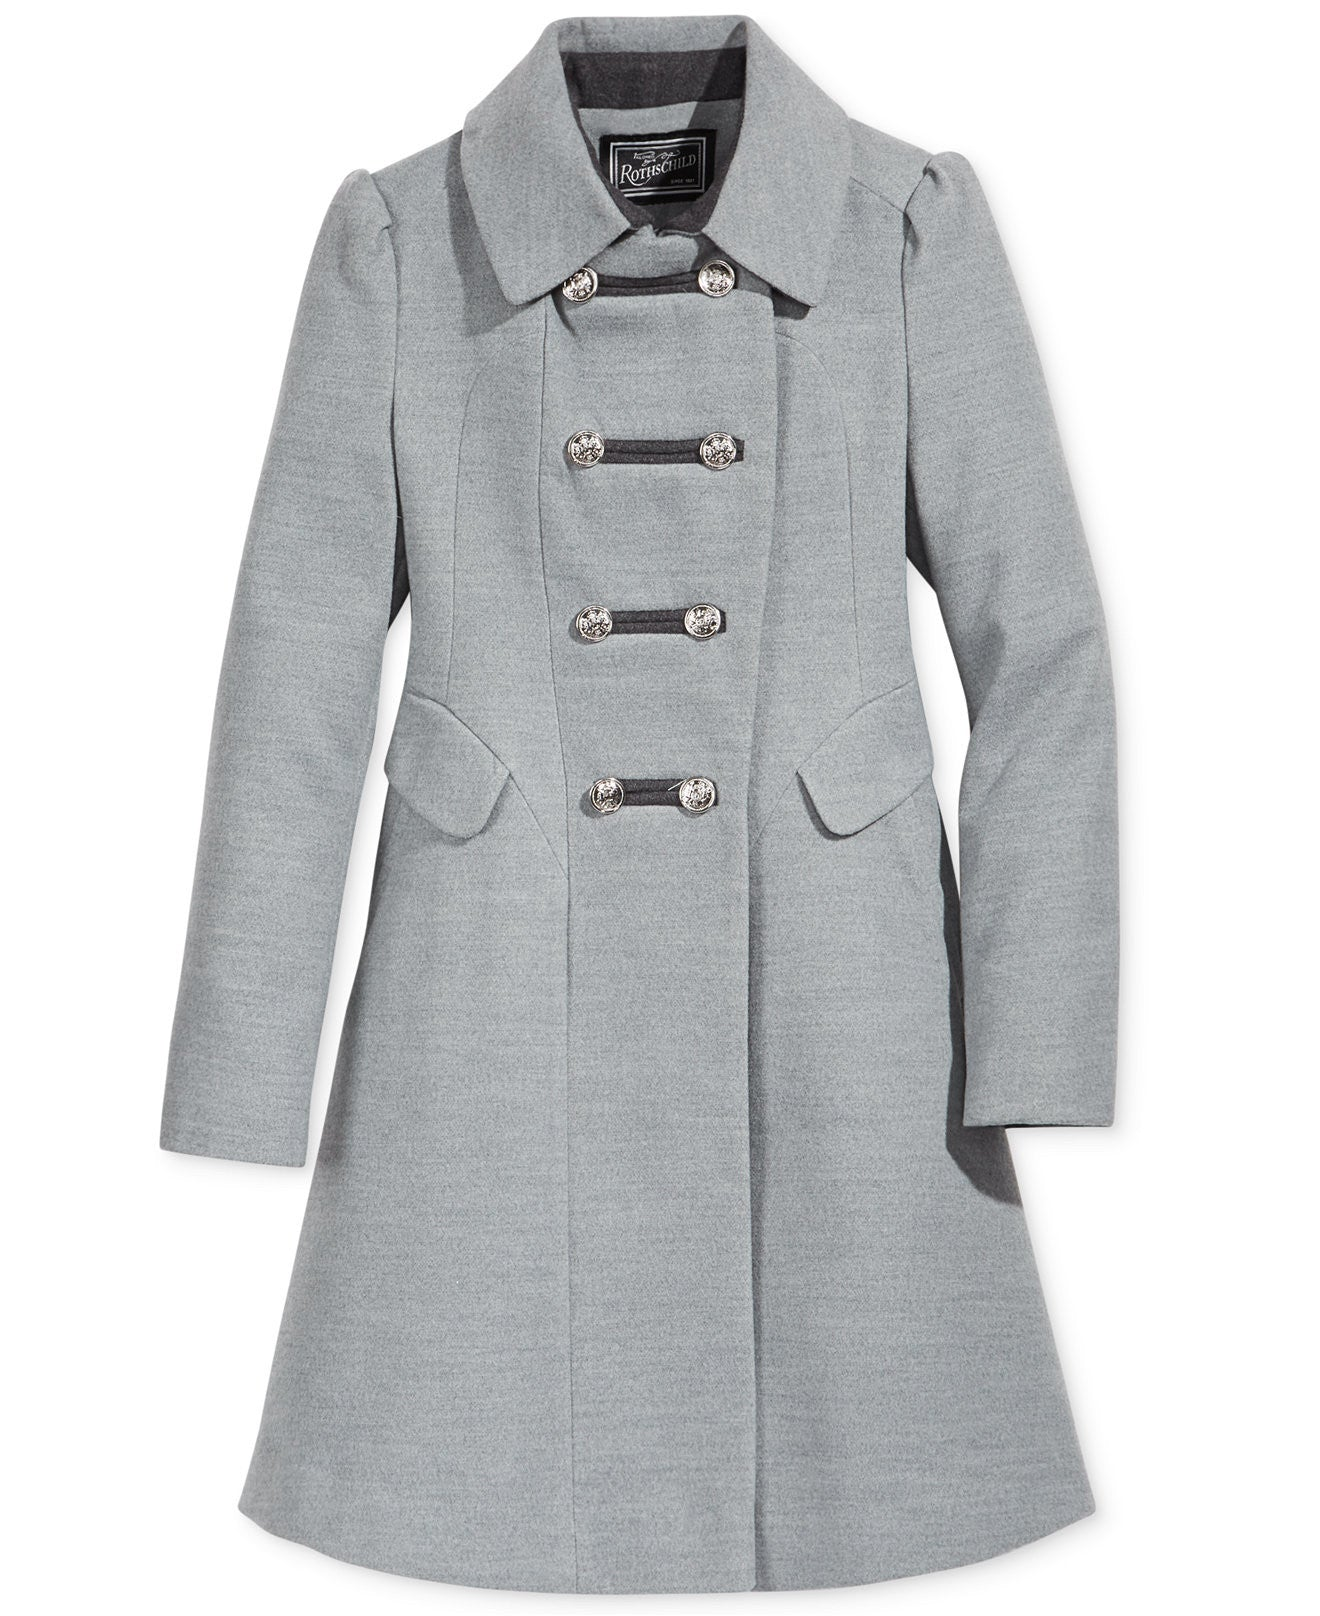 Rothschild Girls' Grey Military Faux Wool Coat - Young Timers Boutique